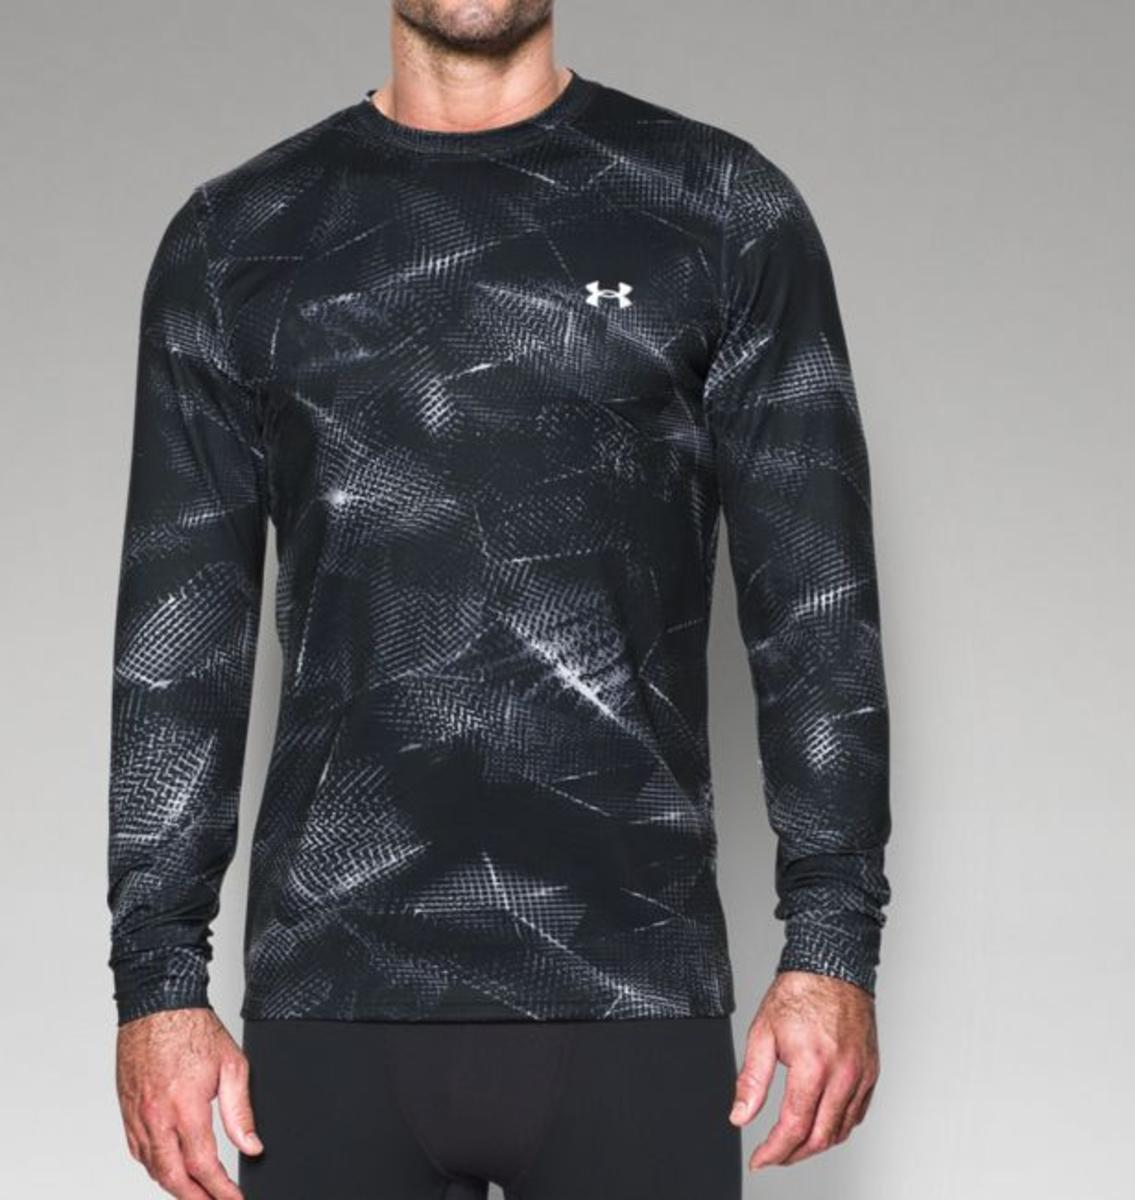 ce5644c92a1 Under Armour Men s UA ColdGear Armour Printed Shirt - The Warming Store